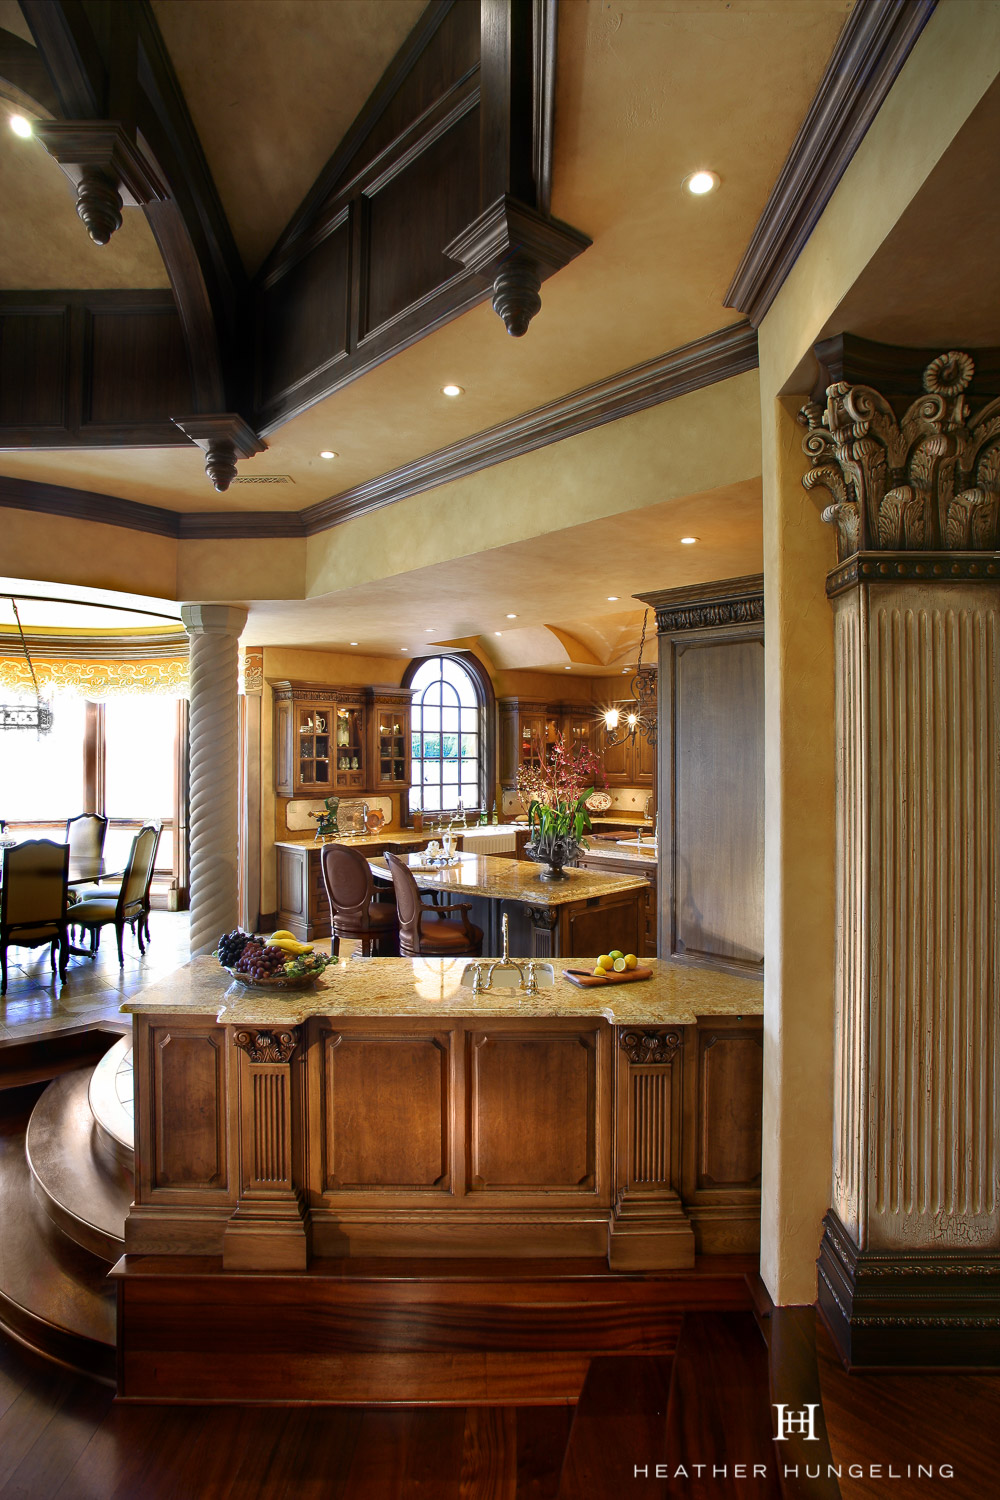 A bar area for guests keeps beverages easily accessible for entertaining